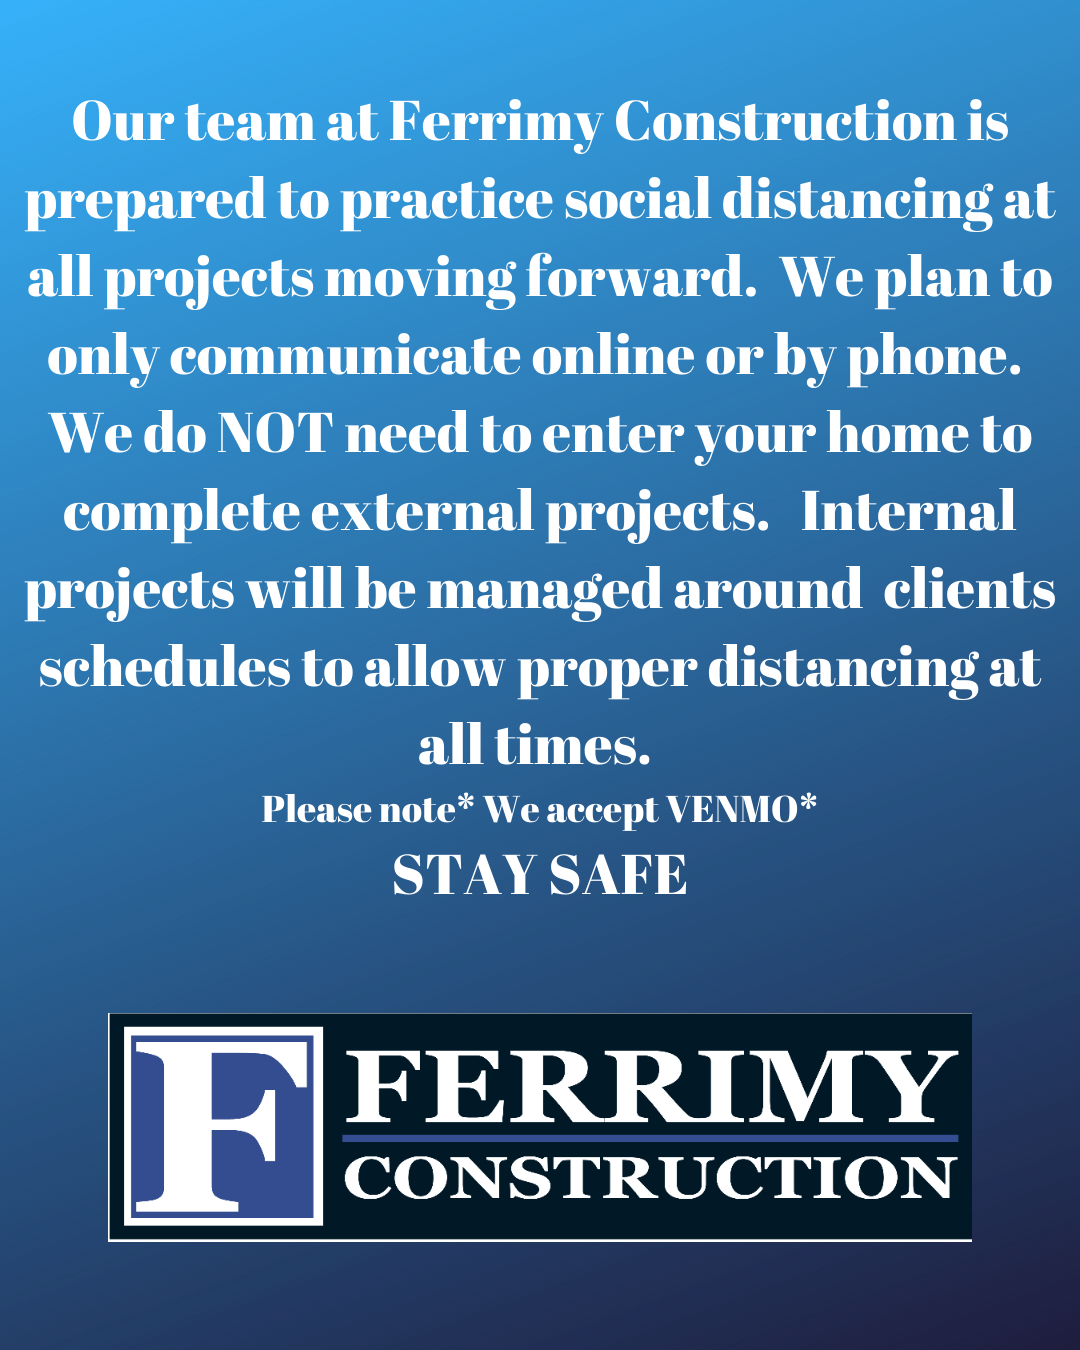 Don't forget to follow us on Instagram @ferrimyroofingconstruction copy